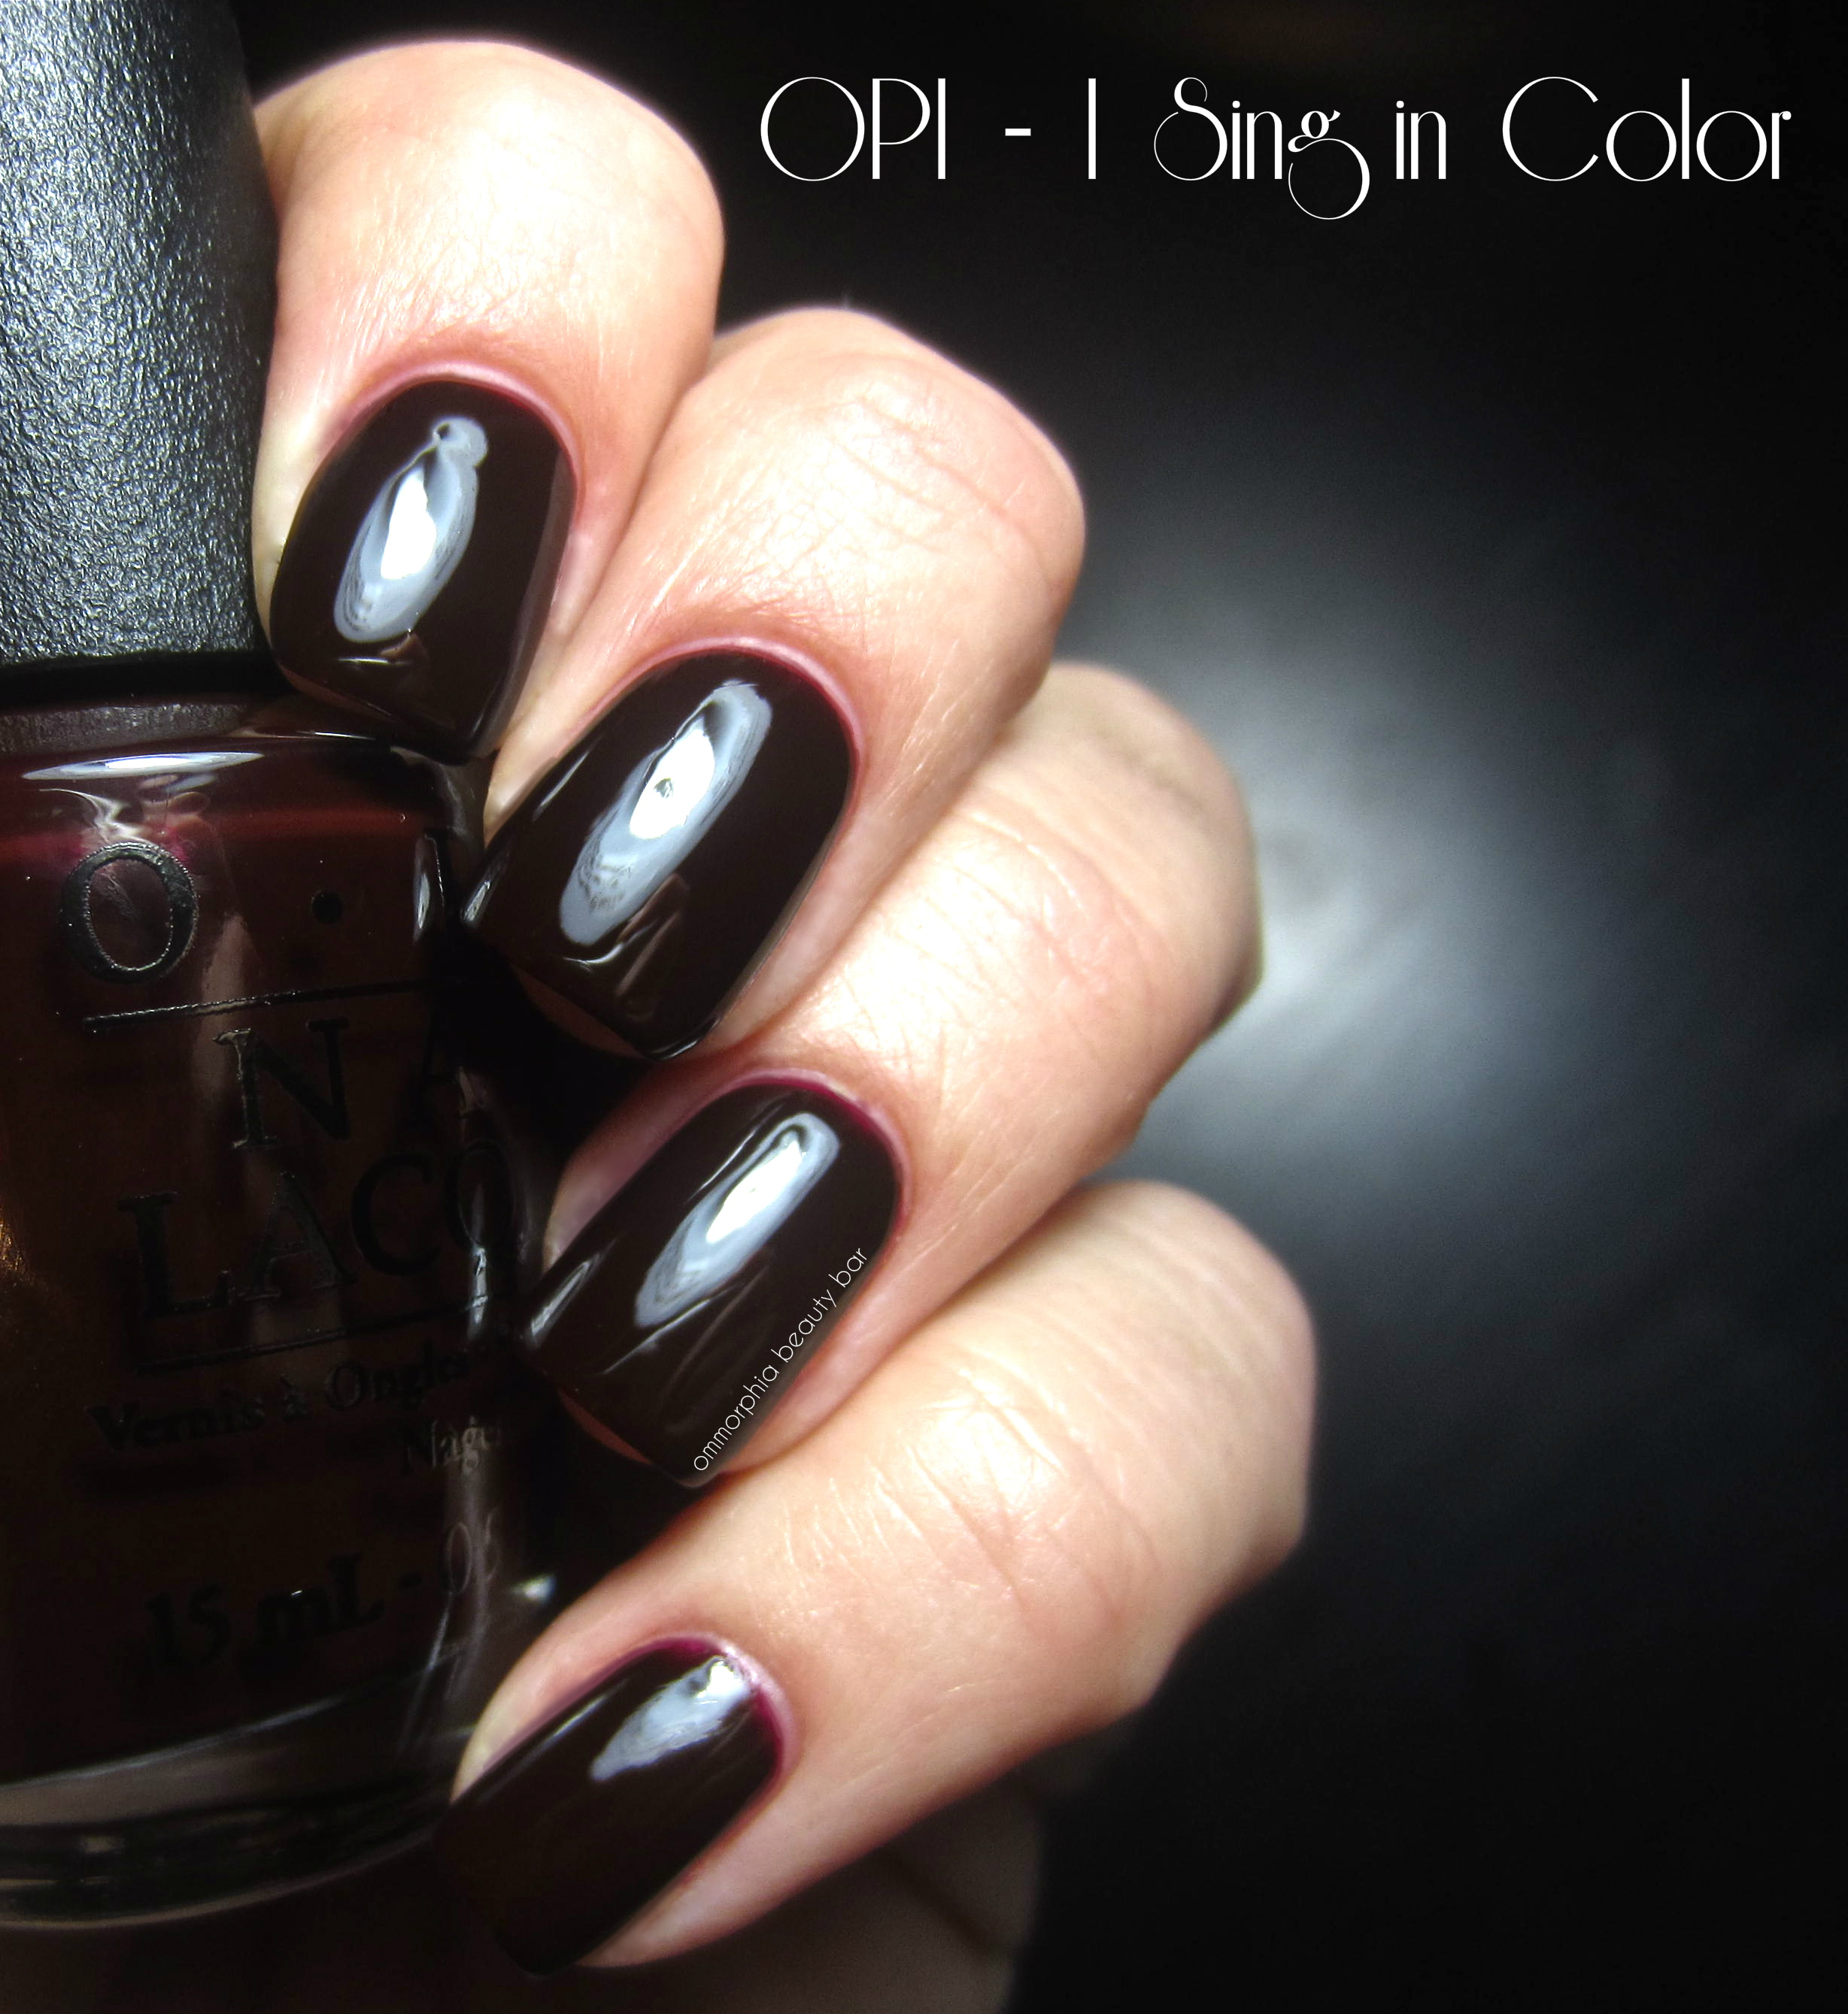 OPI I Sing in COlor swatch 2Opi I Sing In Color